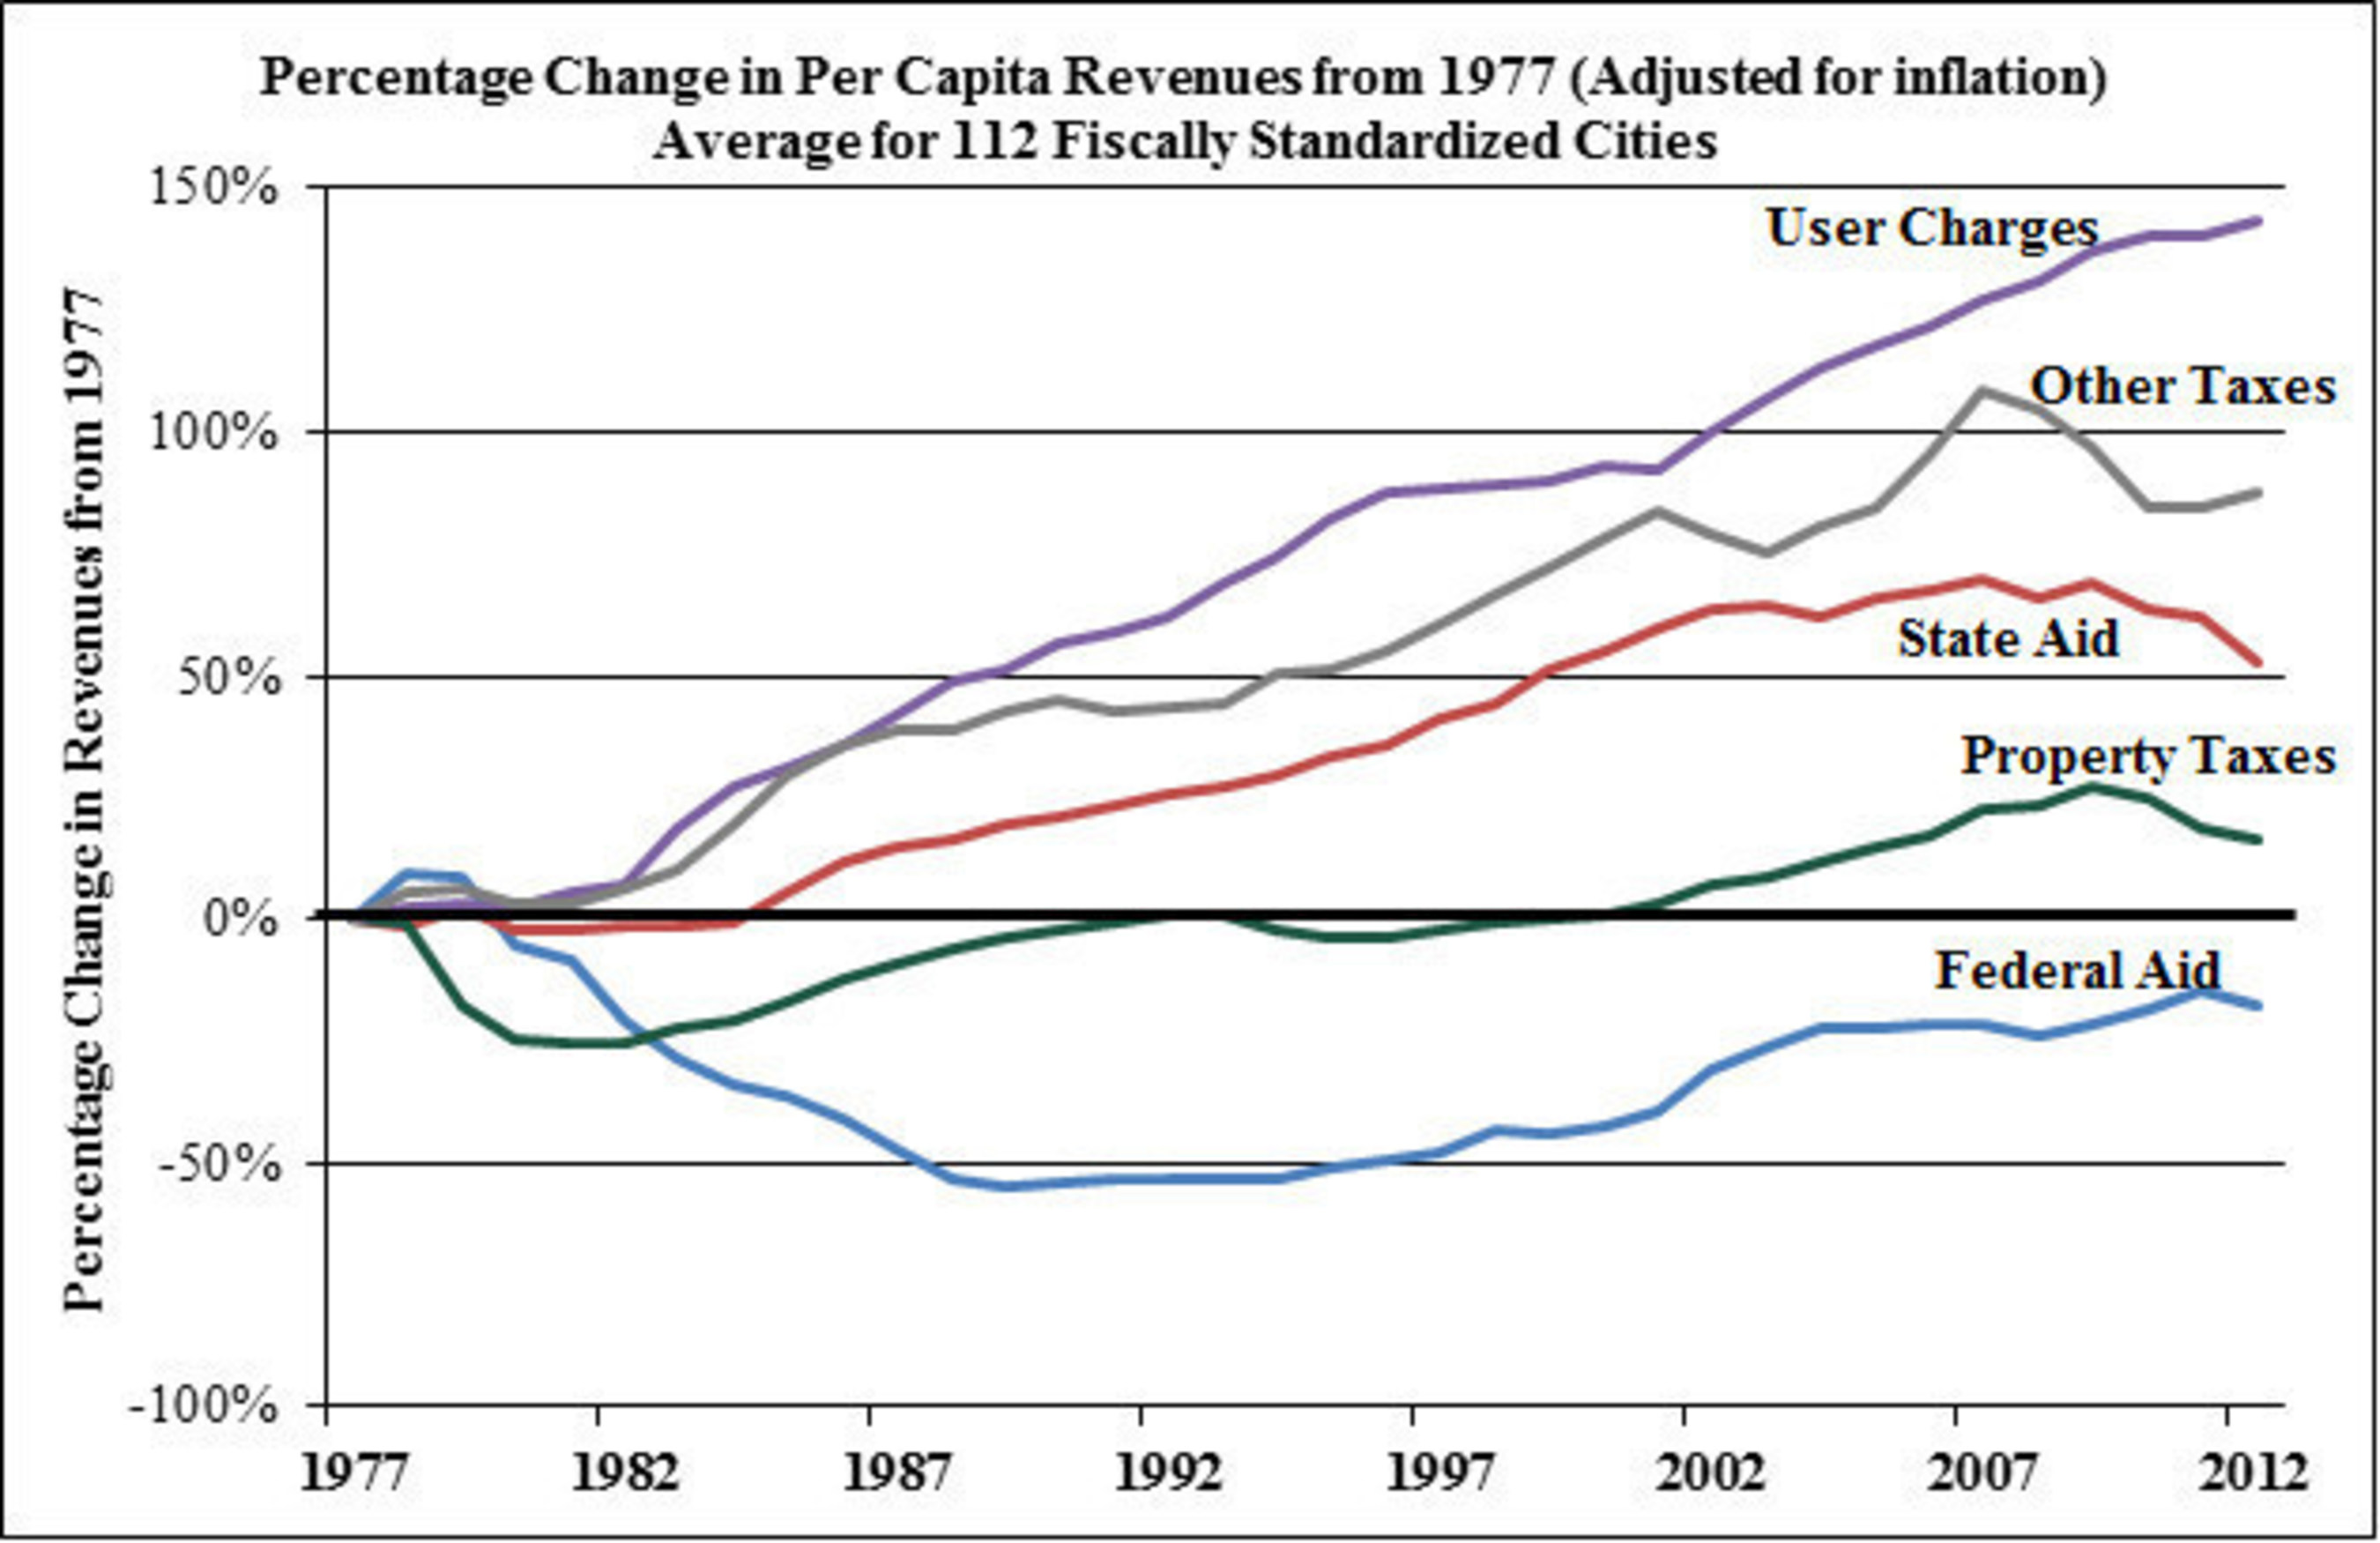 Increases in fees & user charges from 1977 to 2012 show the long-term trend in scrambling for revenues, intensifying 2007-2012